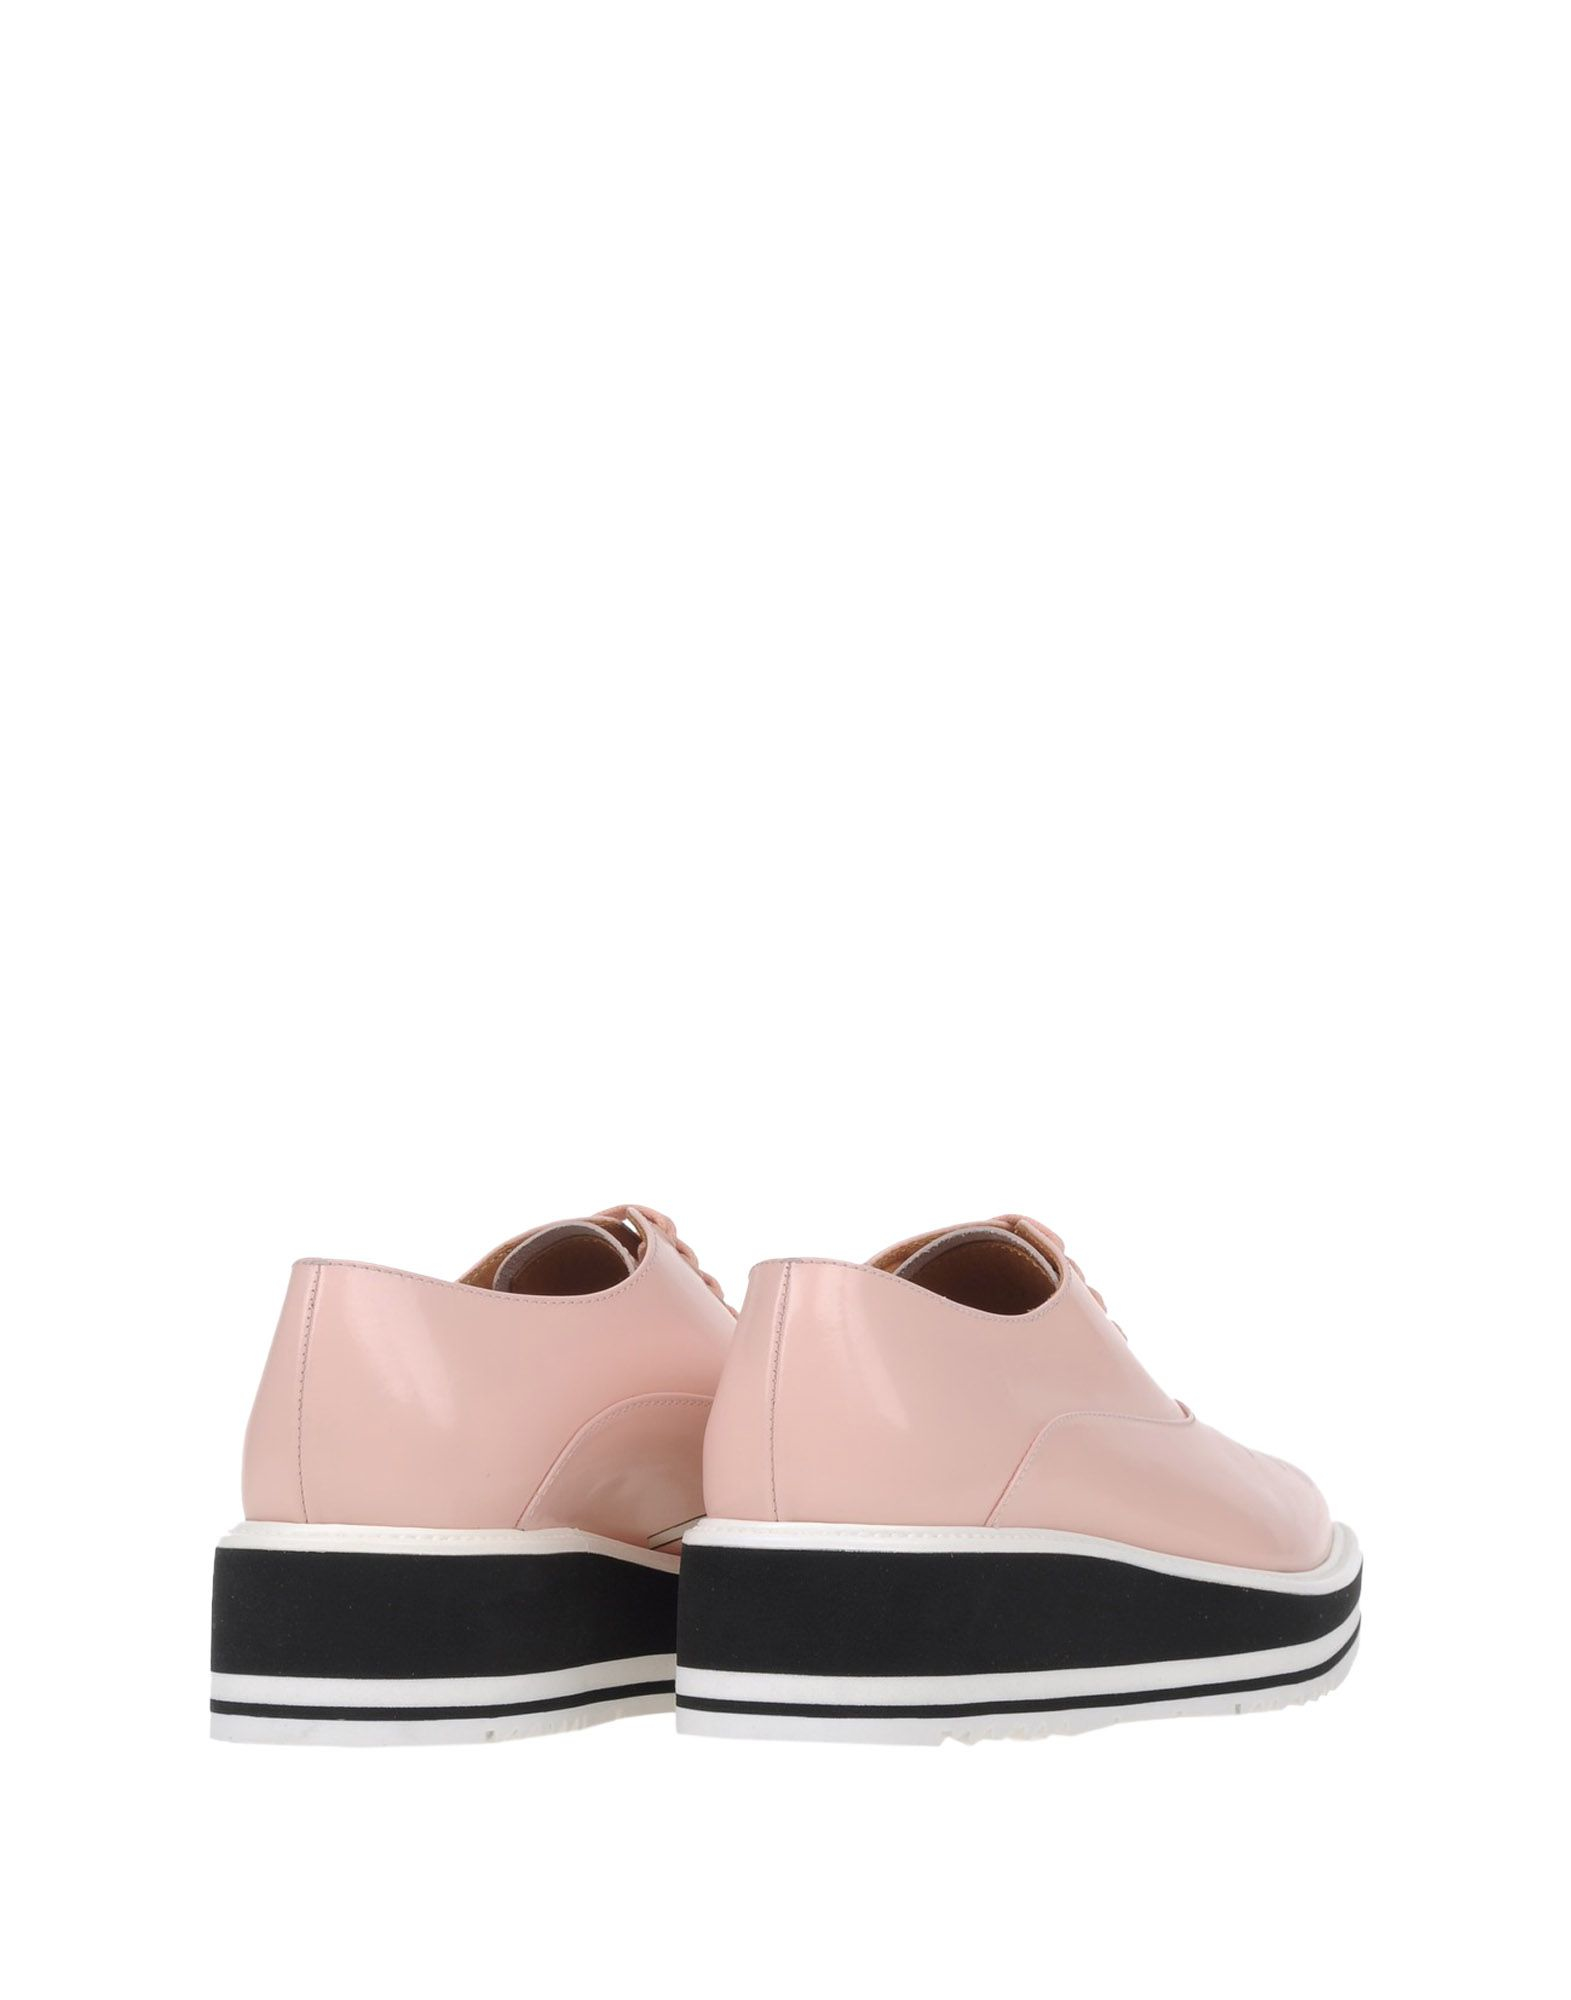 4a73ce89d60 ... where can i buy lyst prada lace up shoe in pink 59928 d1514 ...